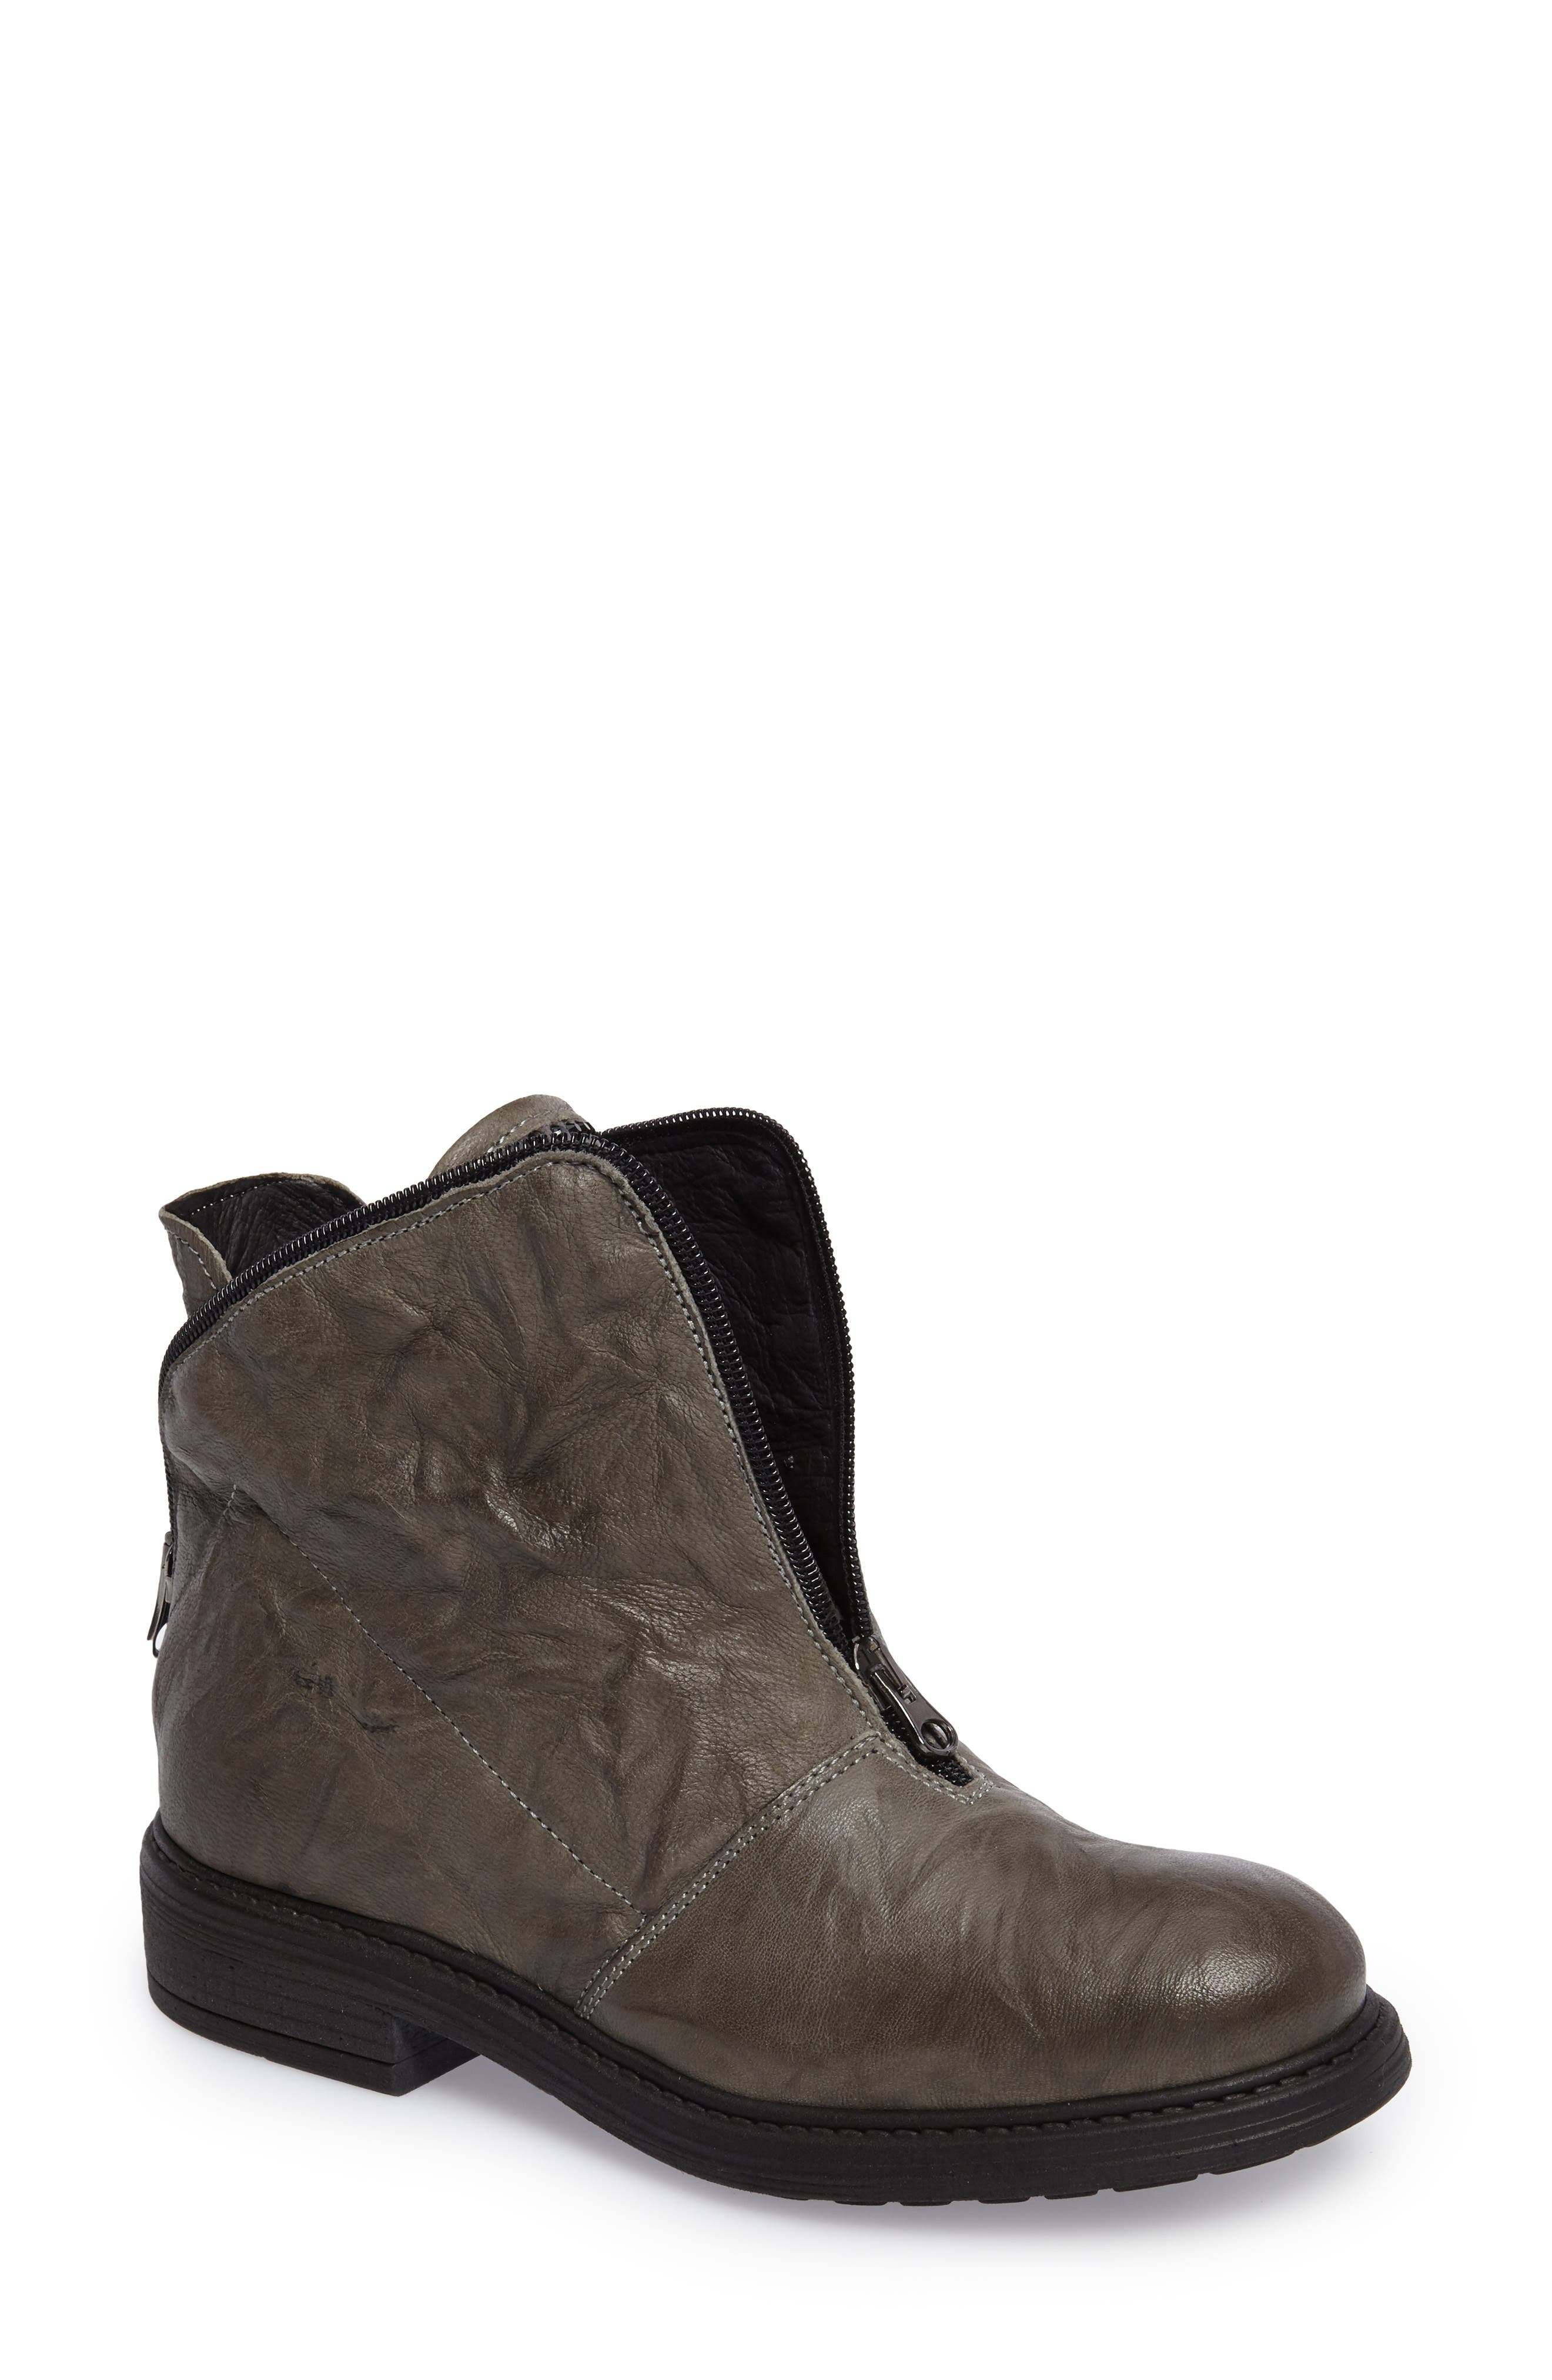 Sheridan Bling Bootie,                         Main,                         color, Charcoal Leather